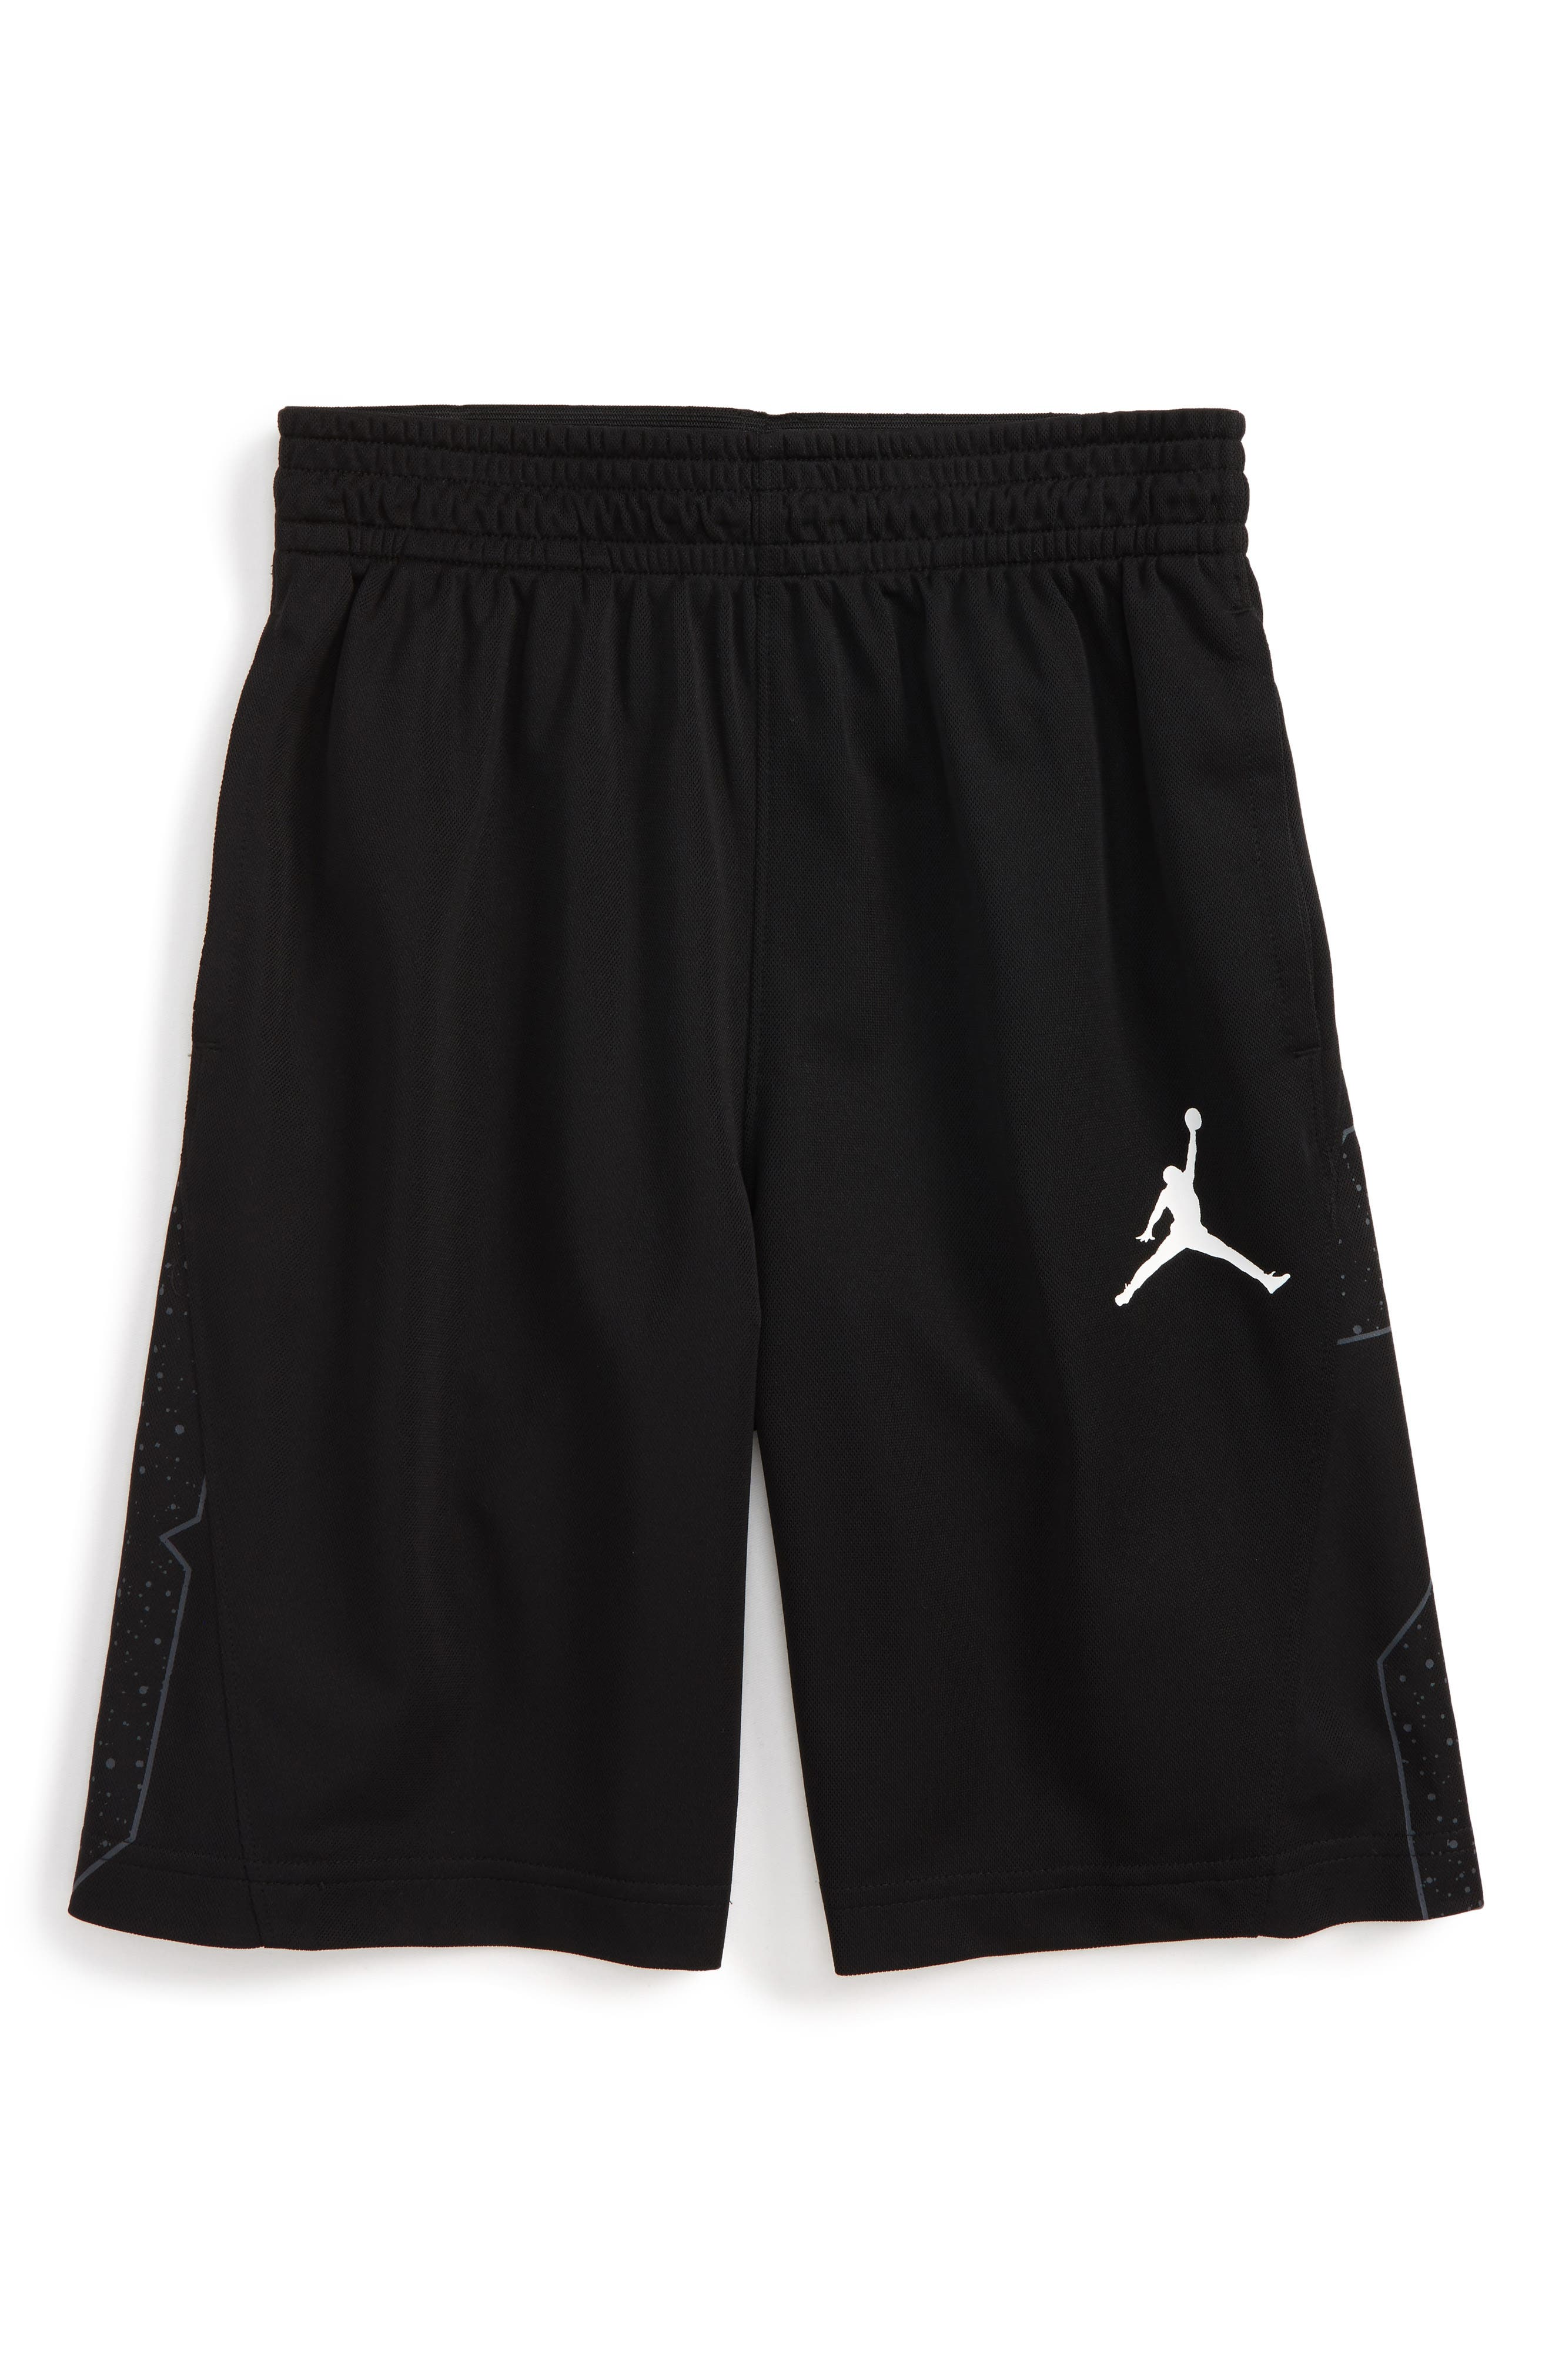 Jordan Speckle 23 Basketball Shorts,                         Main,                         color, Black